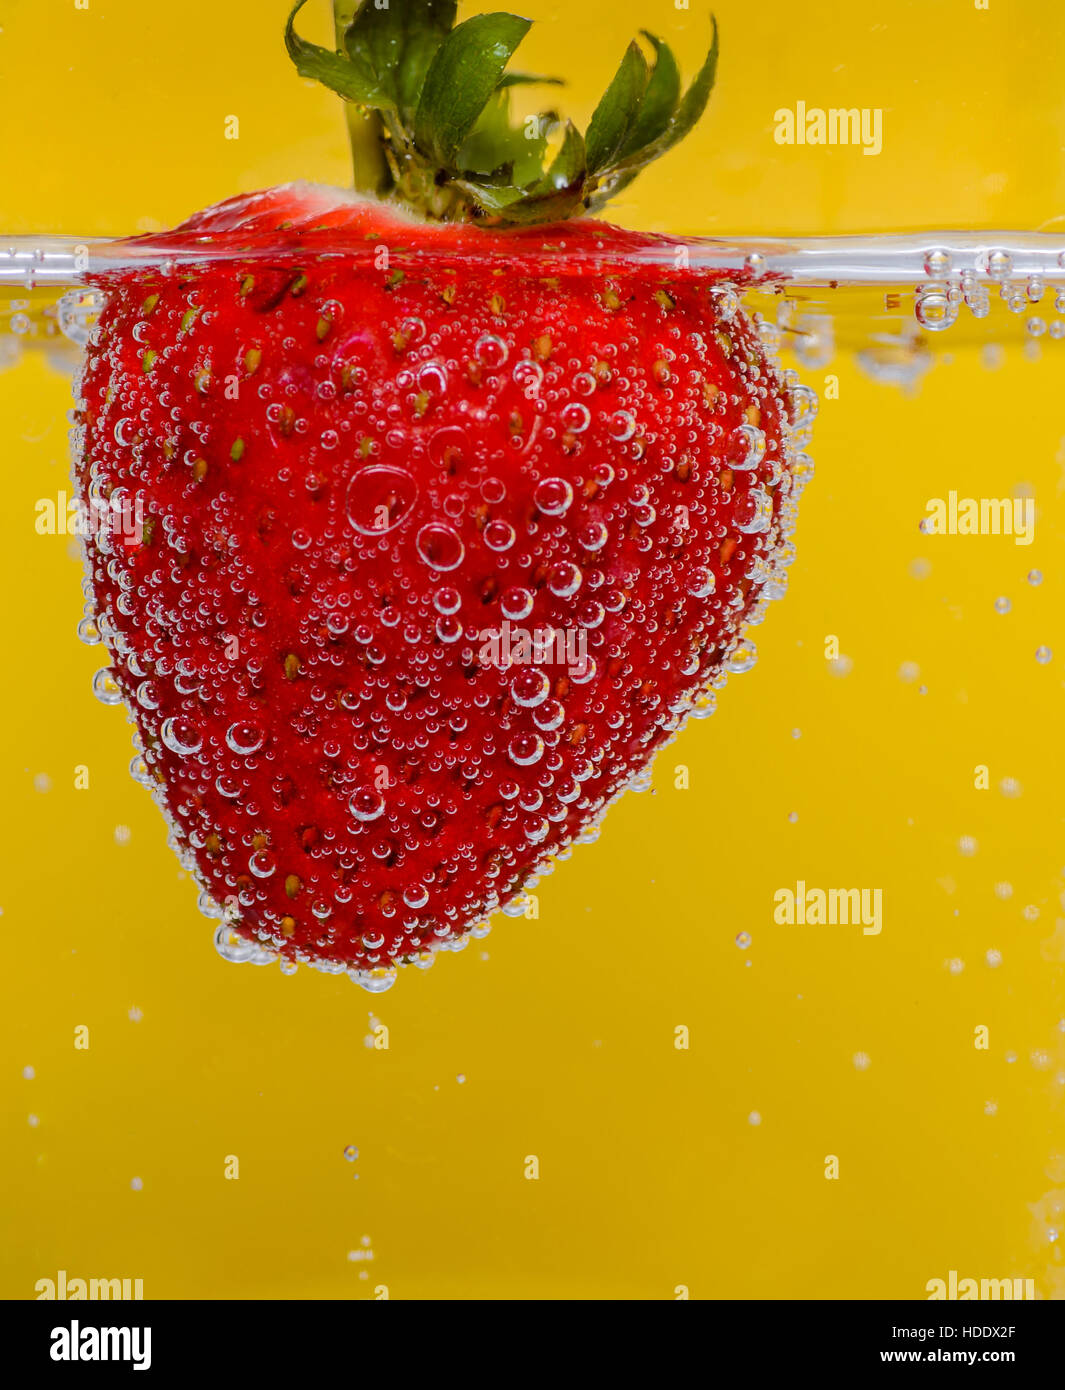 Strawberry in sparkling water against a yellow background - Stock Image